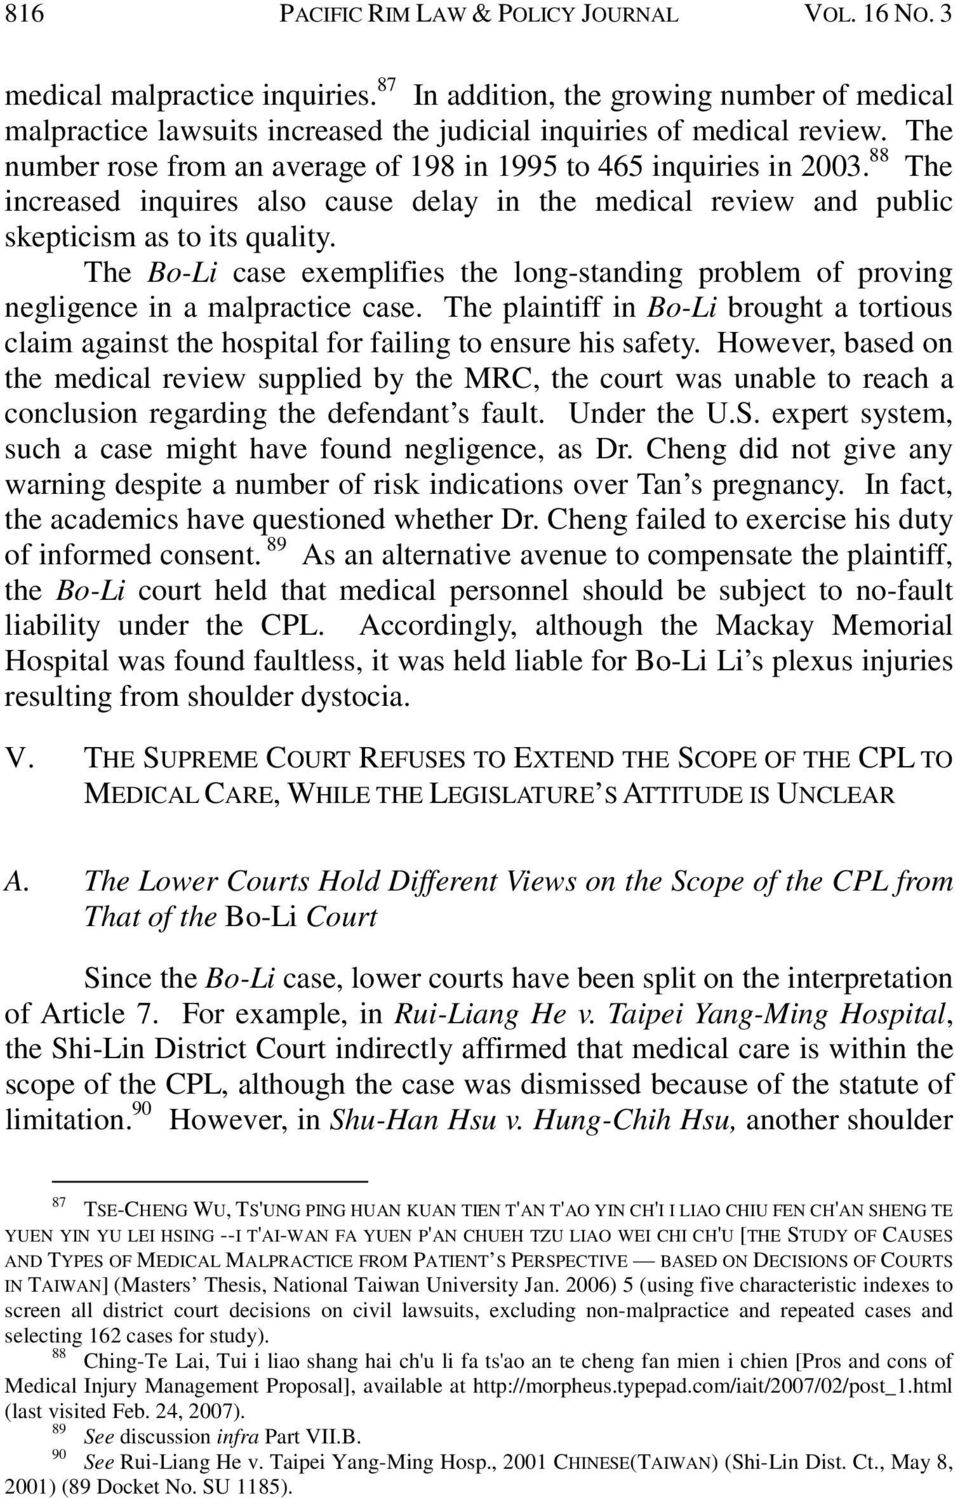 The Bo-Li case exemplifies the long-standing problem of proving negligence in a malpractice case. The plaintiff in Bo-Li brought a tortious claim against the hospital for failing to ensure his safety.